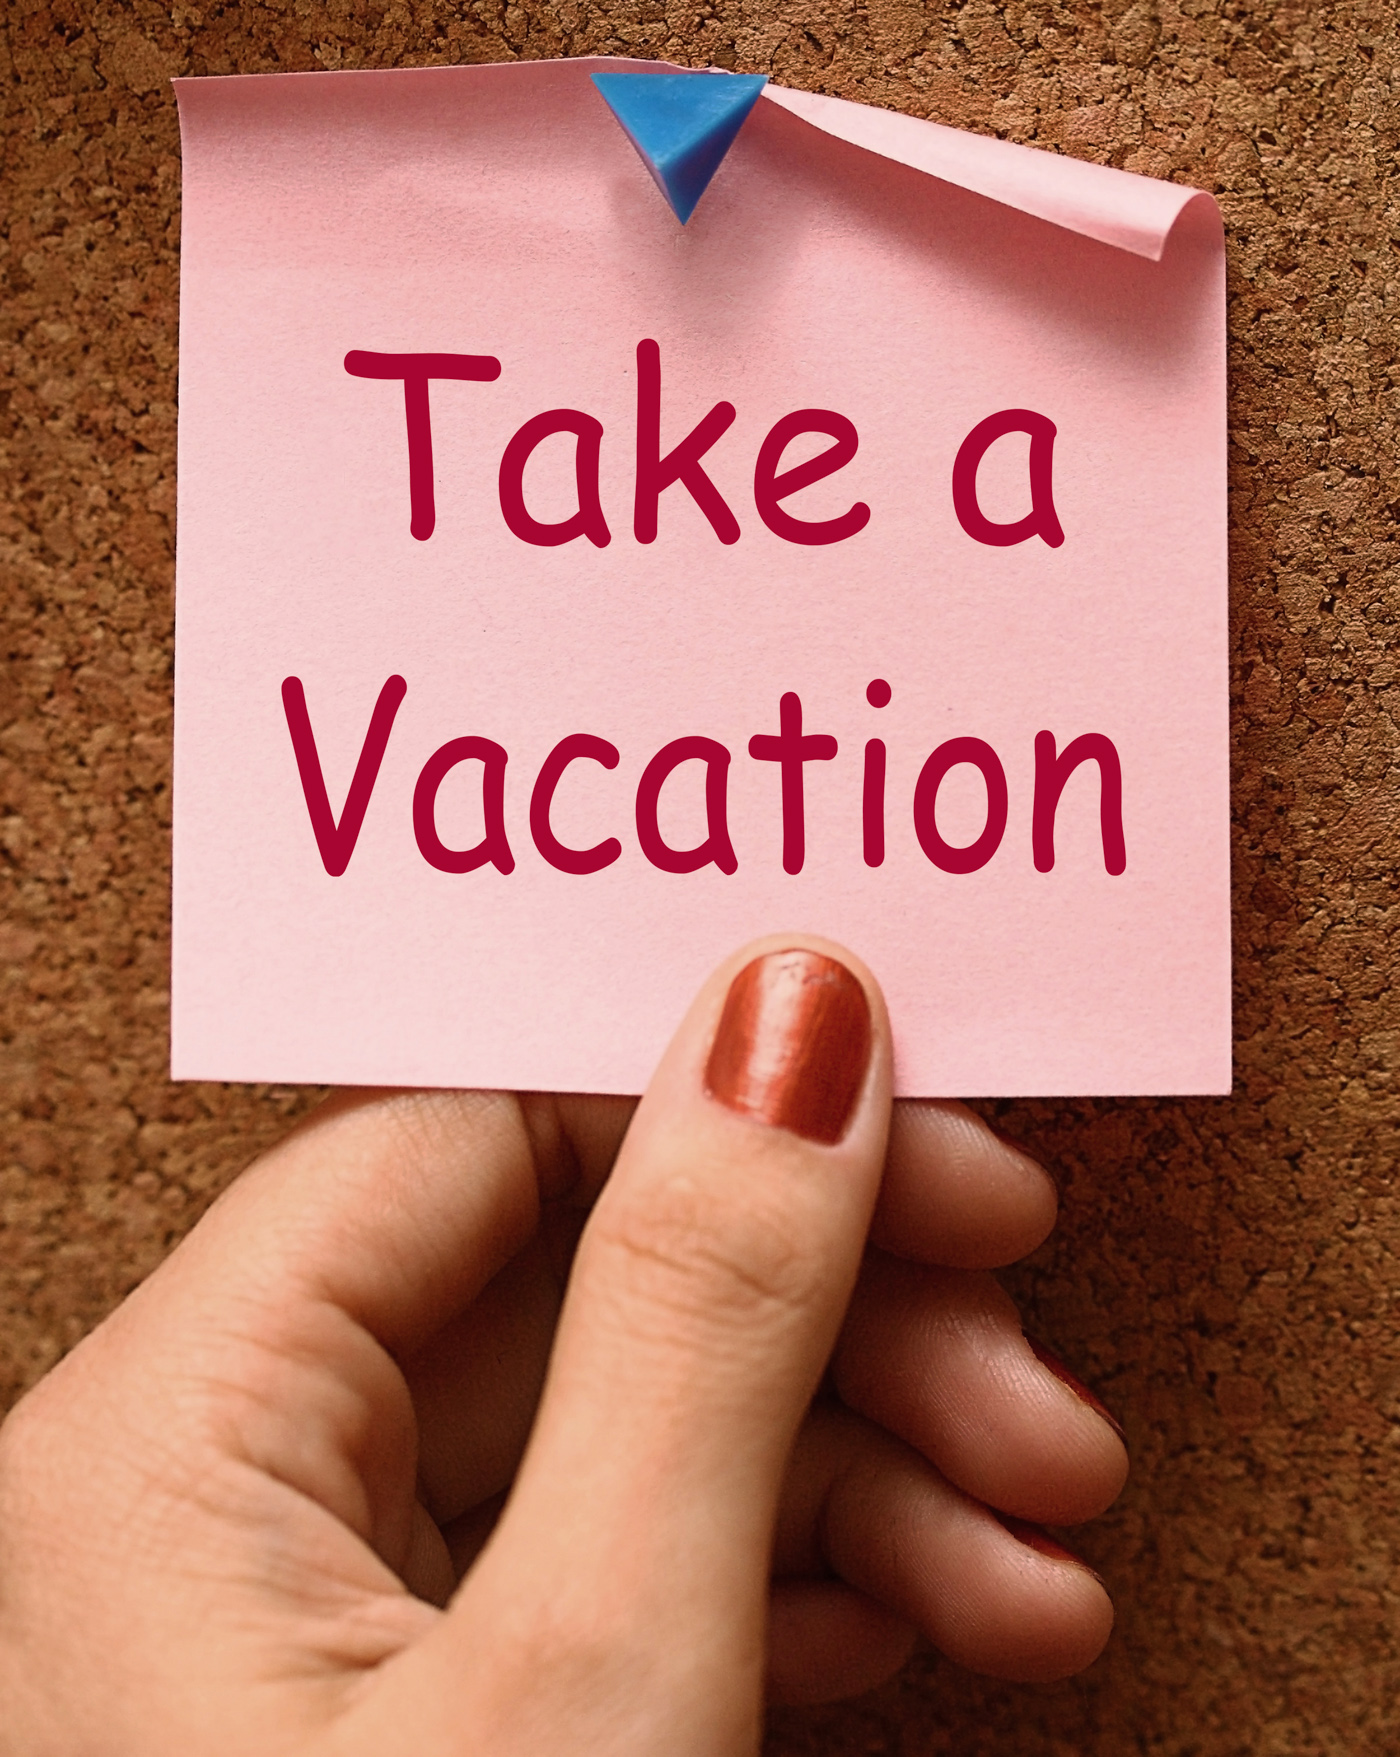 Take A Vacation Note Means Time For Holiday, Takeabreak, Recess, TakeaVacation, Off-time, HQ Photo